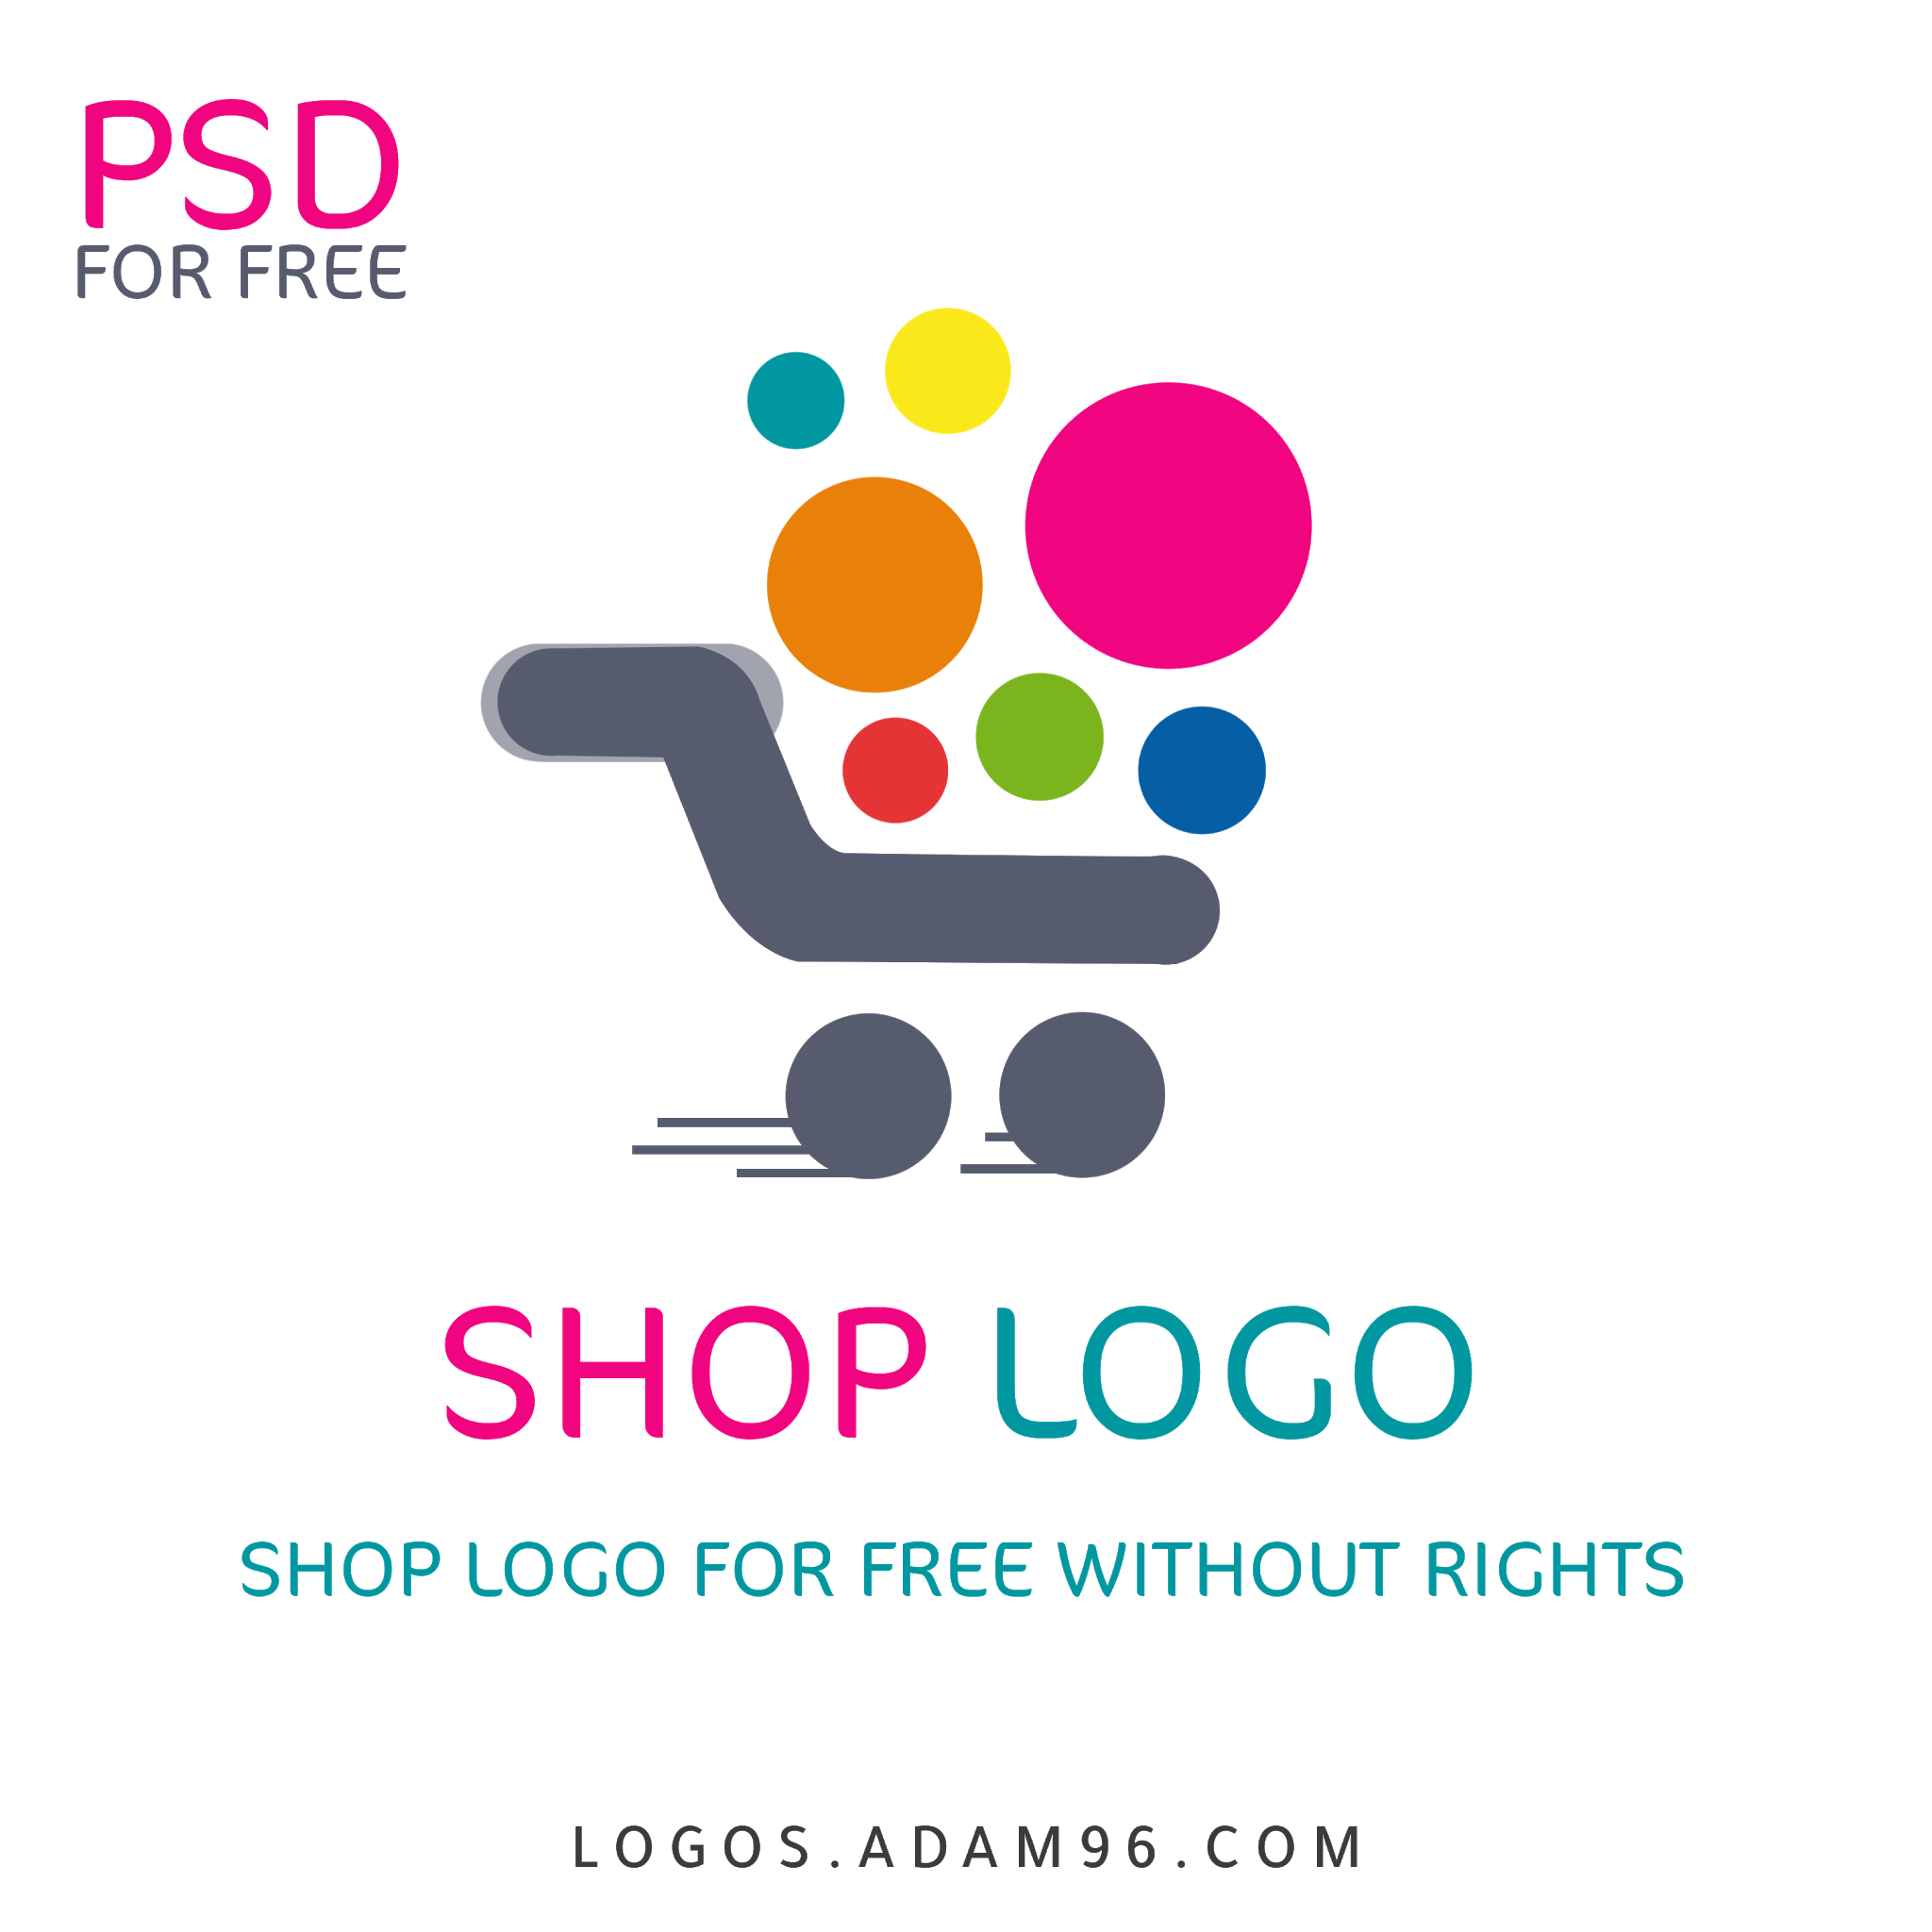 Download logo Shop for free without rights